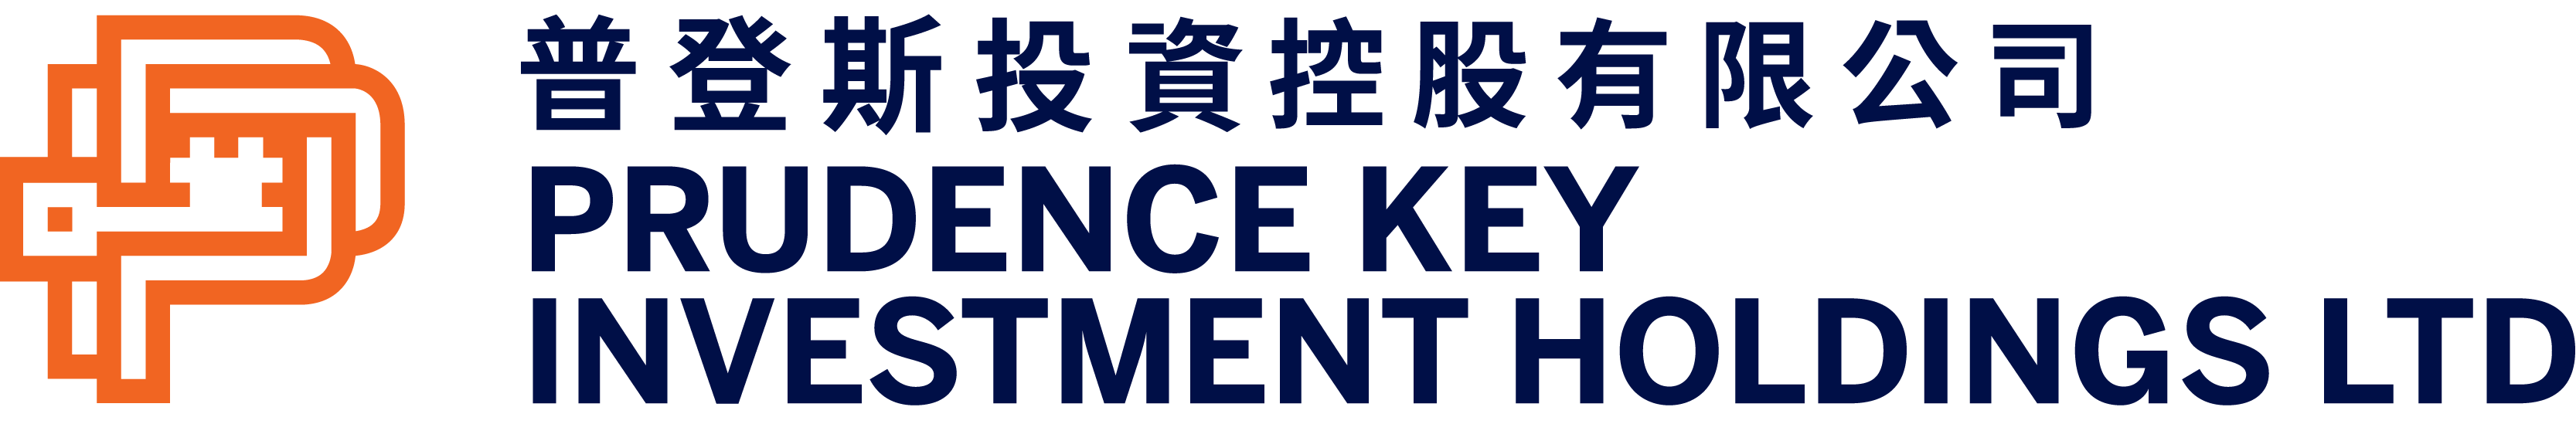 Prudence Key Investment Holdings Limited Logo